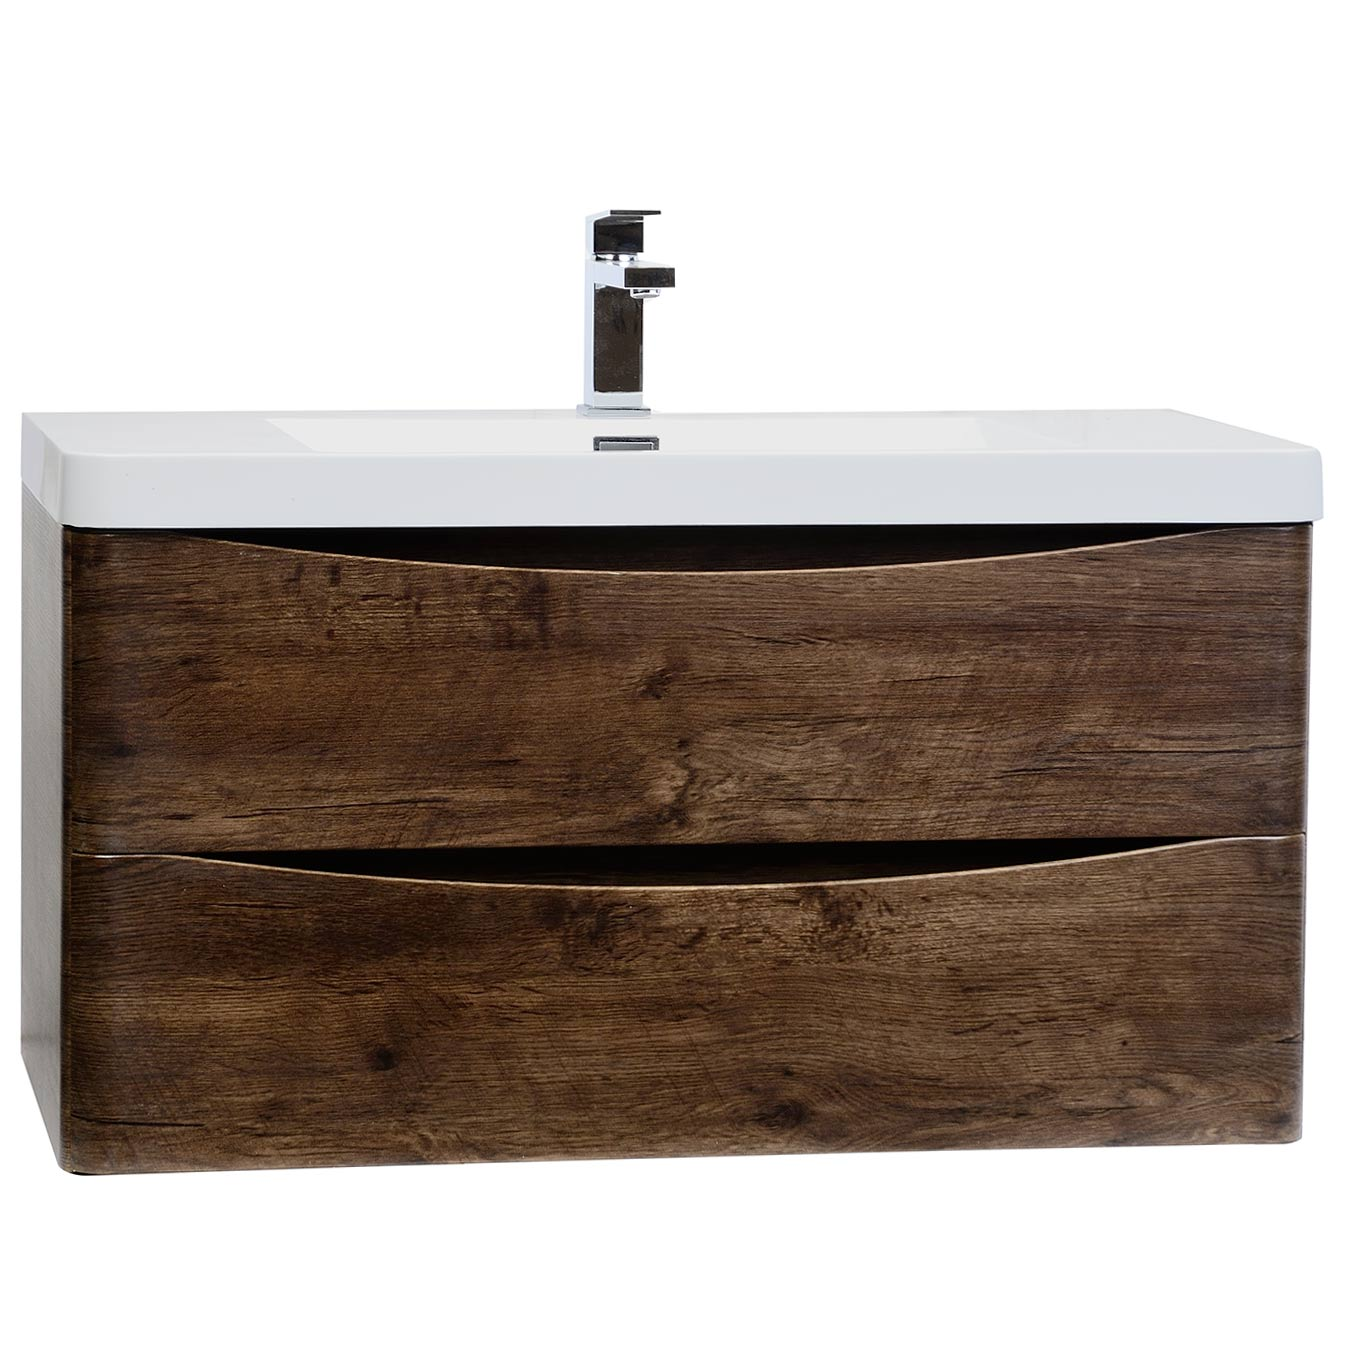 Modern bathroom sinks and faucets - Buy Merida 35 5 Quot Wall Mount Bathroom Vanity In Rosewood Tn